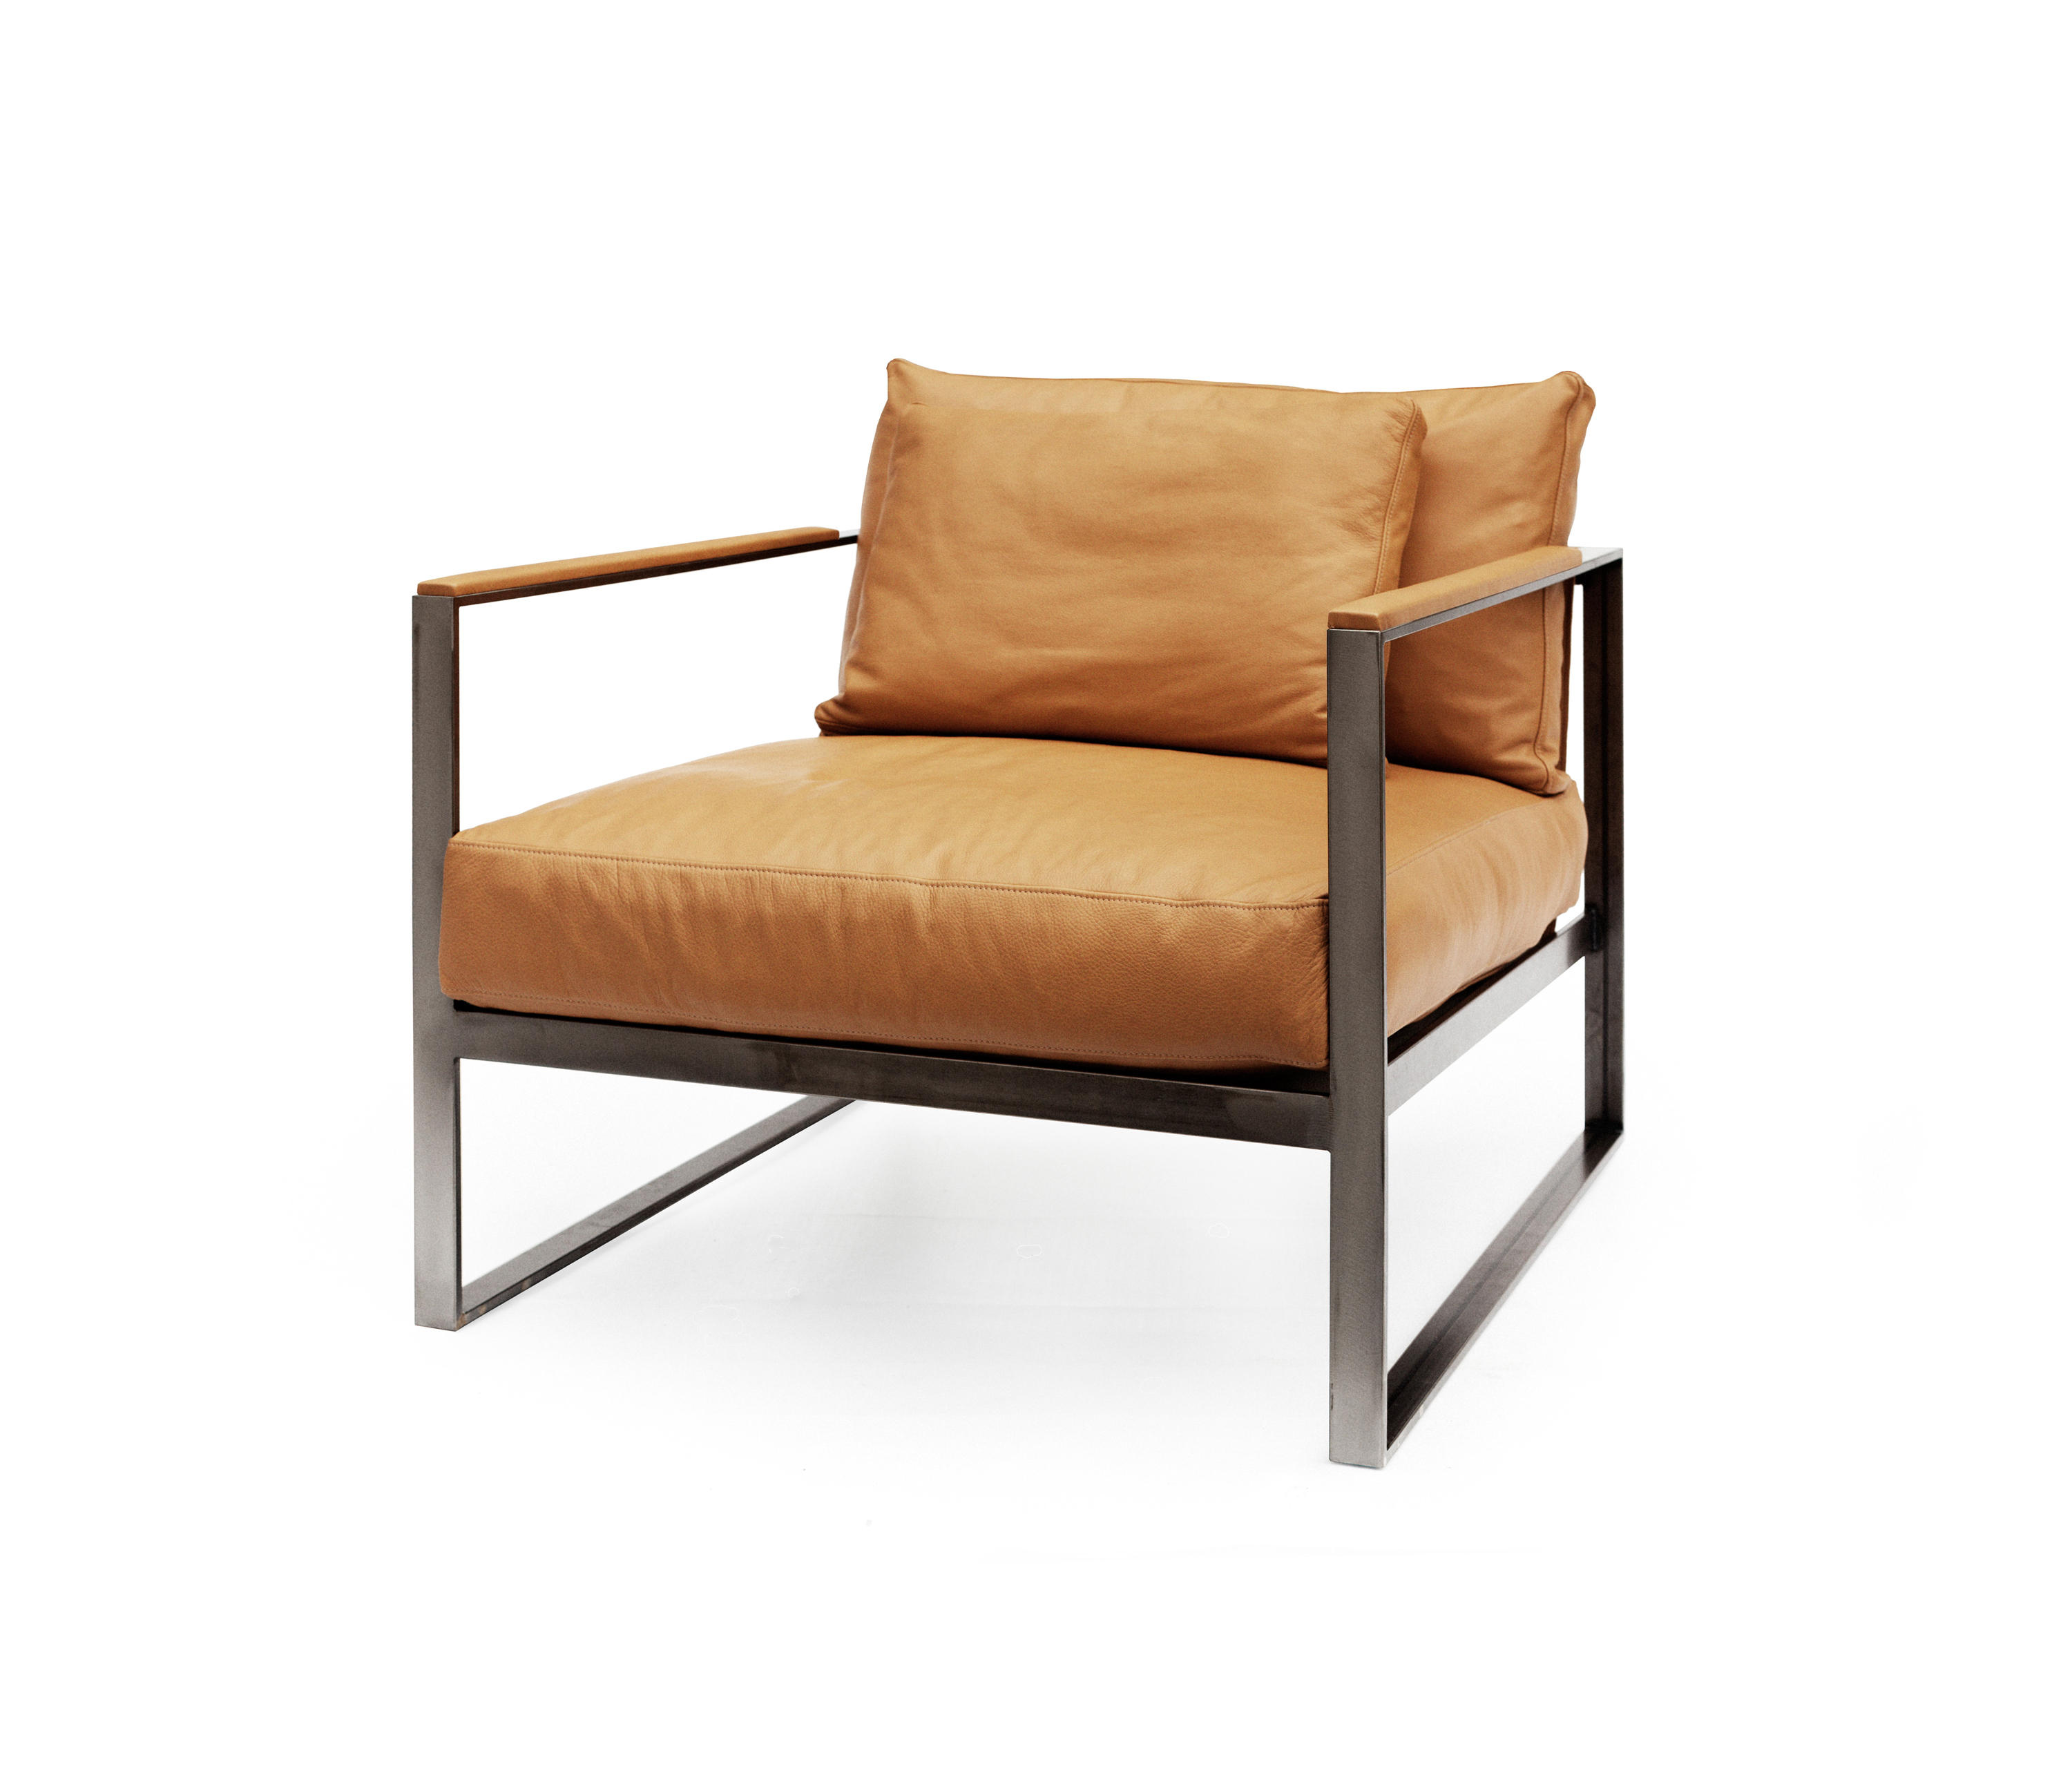 Monaco Lounge Chair By Röshults | Lounge Chairs ...